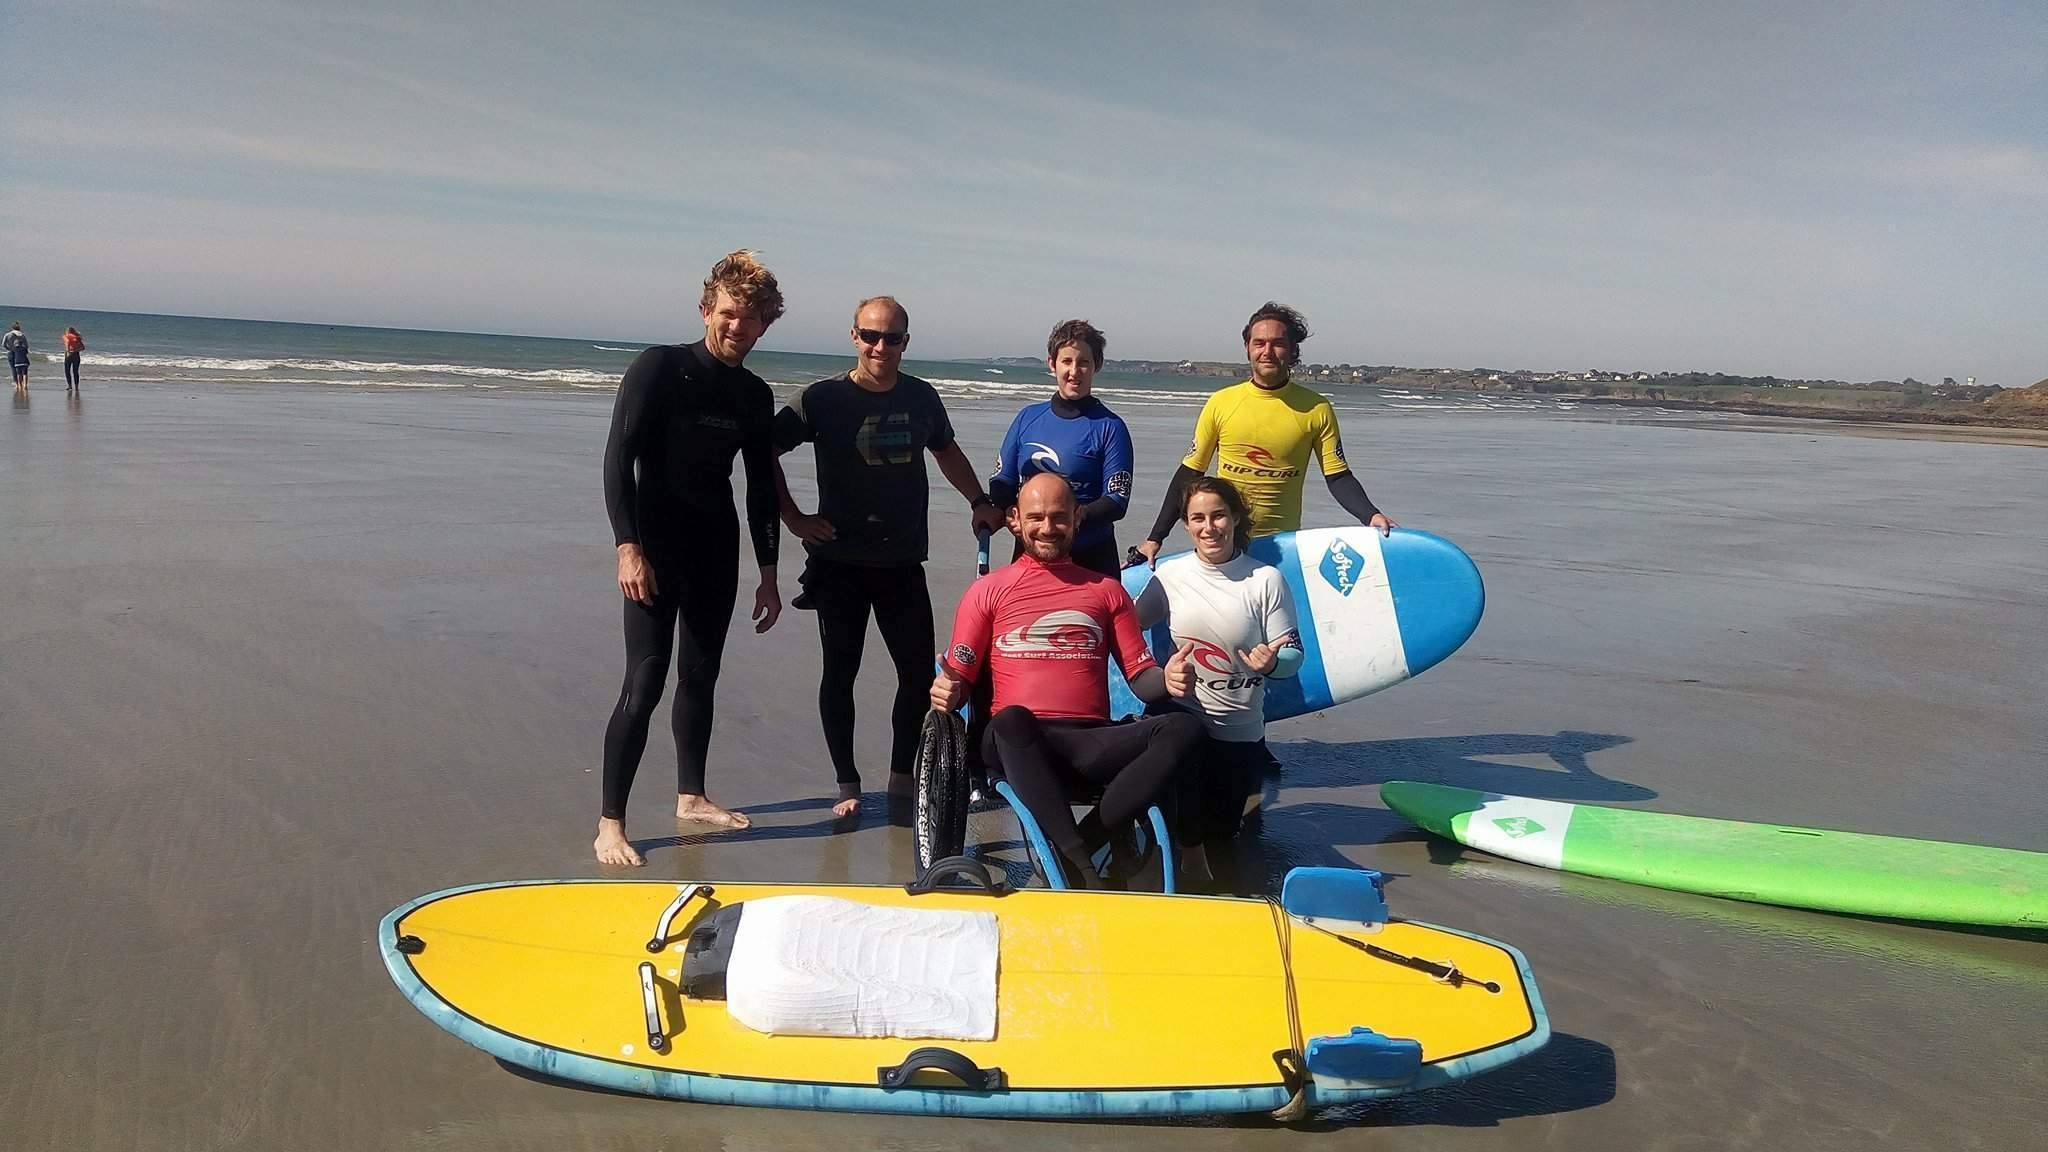 https://www.ligue-bretagne-surf.bzh/wp-content/uploads/2018/02/Loic-guillemarre.jpg